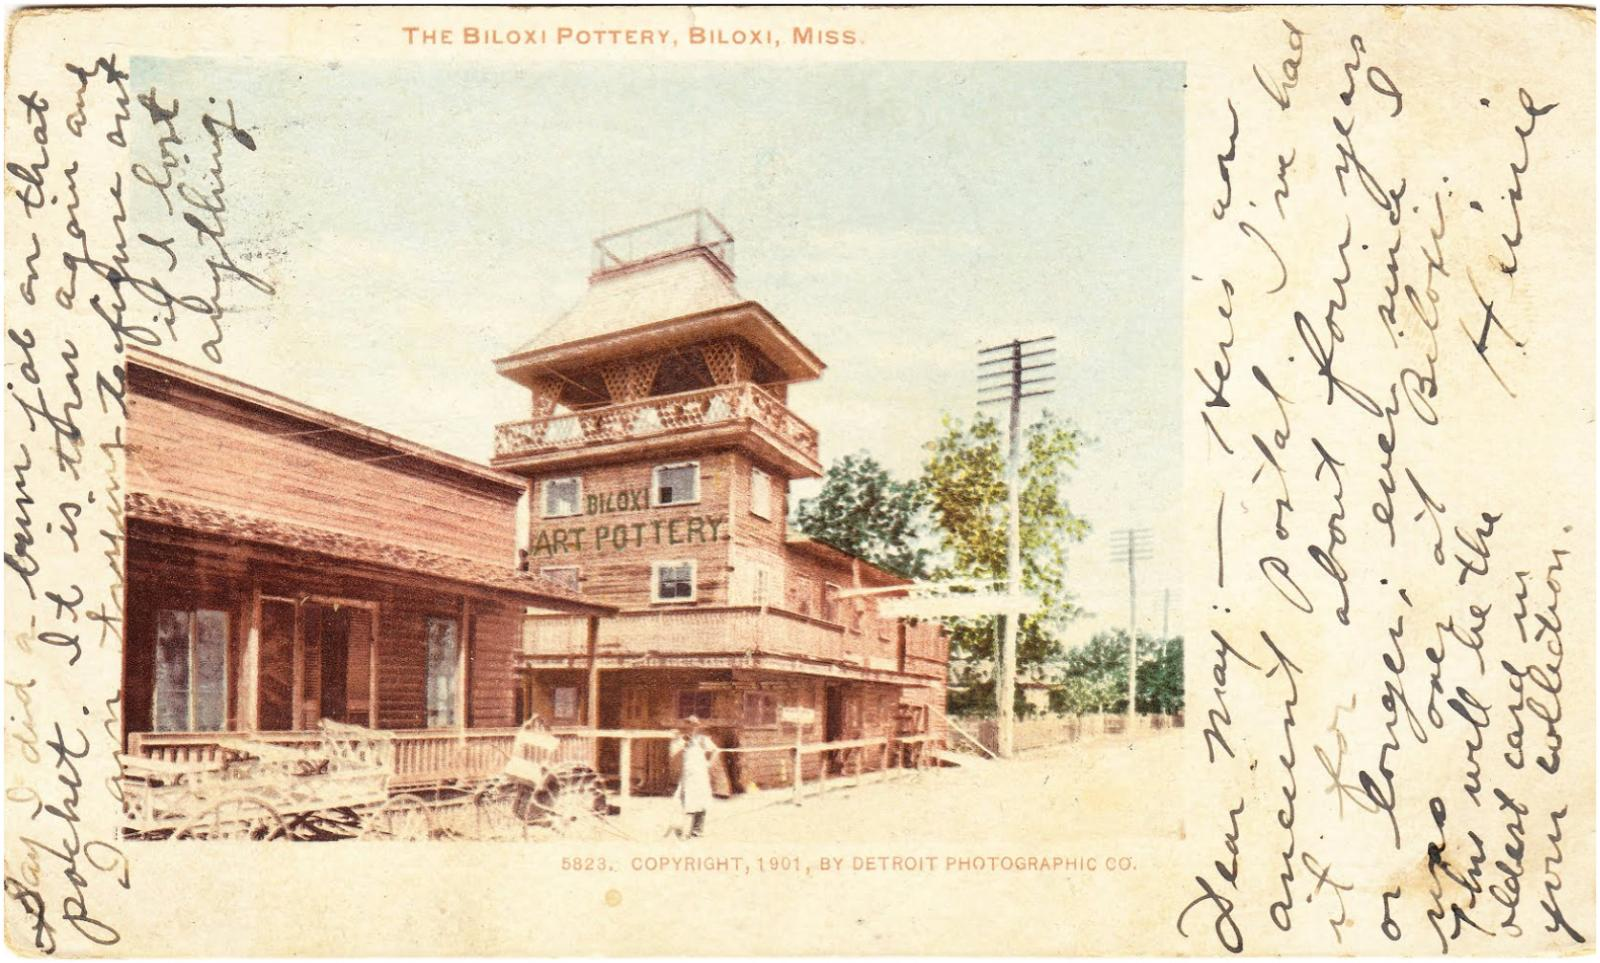 Detroit Photographic Co., postcard of George Ohr's Pottery Studio, c. 1901.Courtesy of the Ohr-O'Keefe Museum of Art, Biloxi, Mississippi,